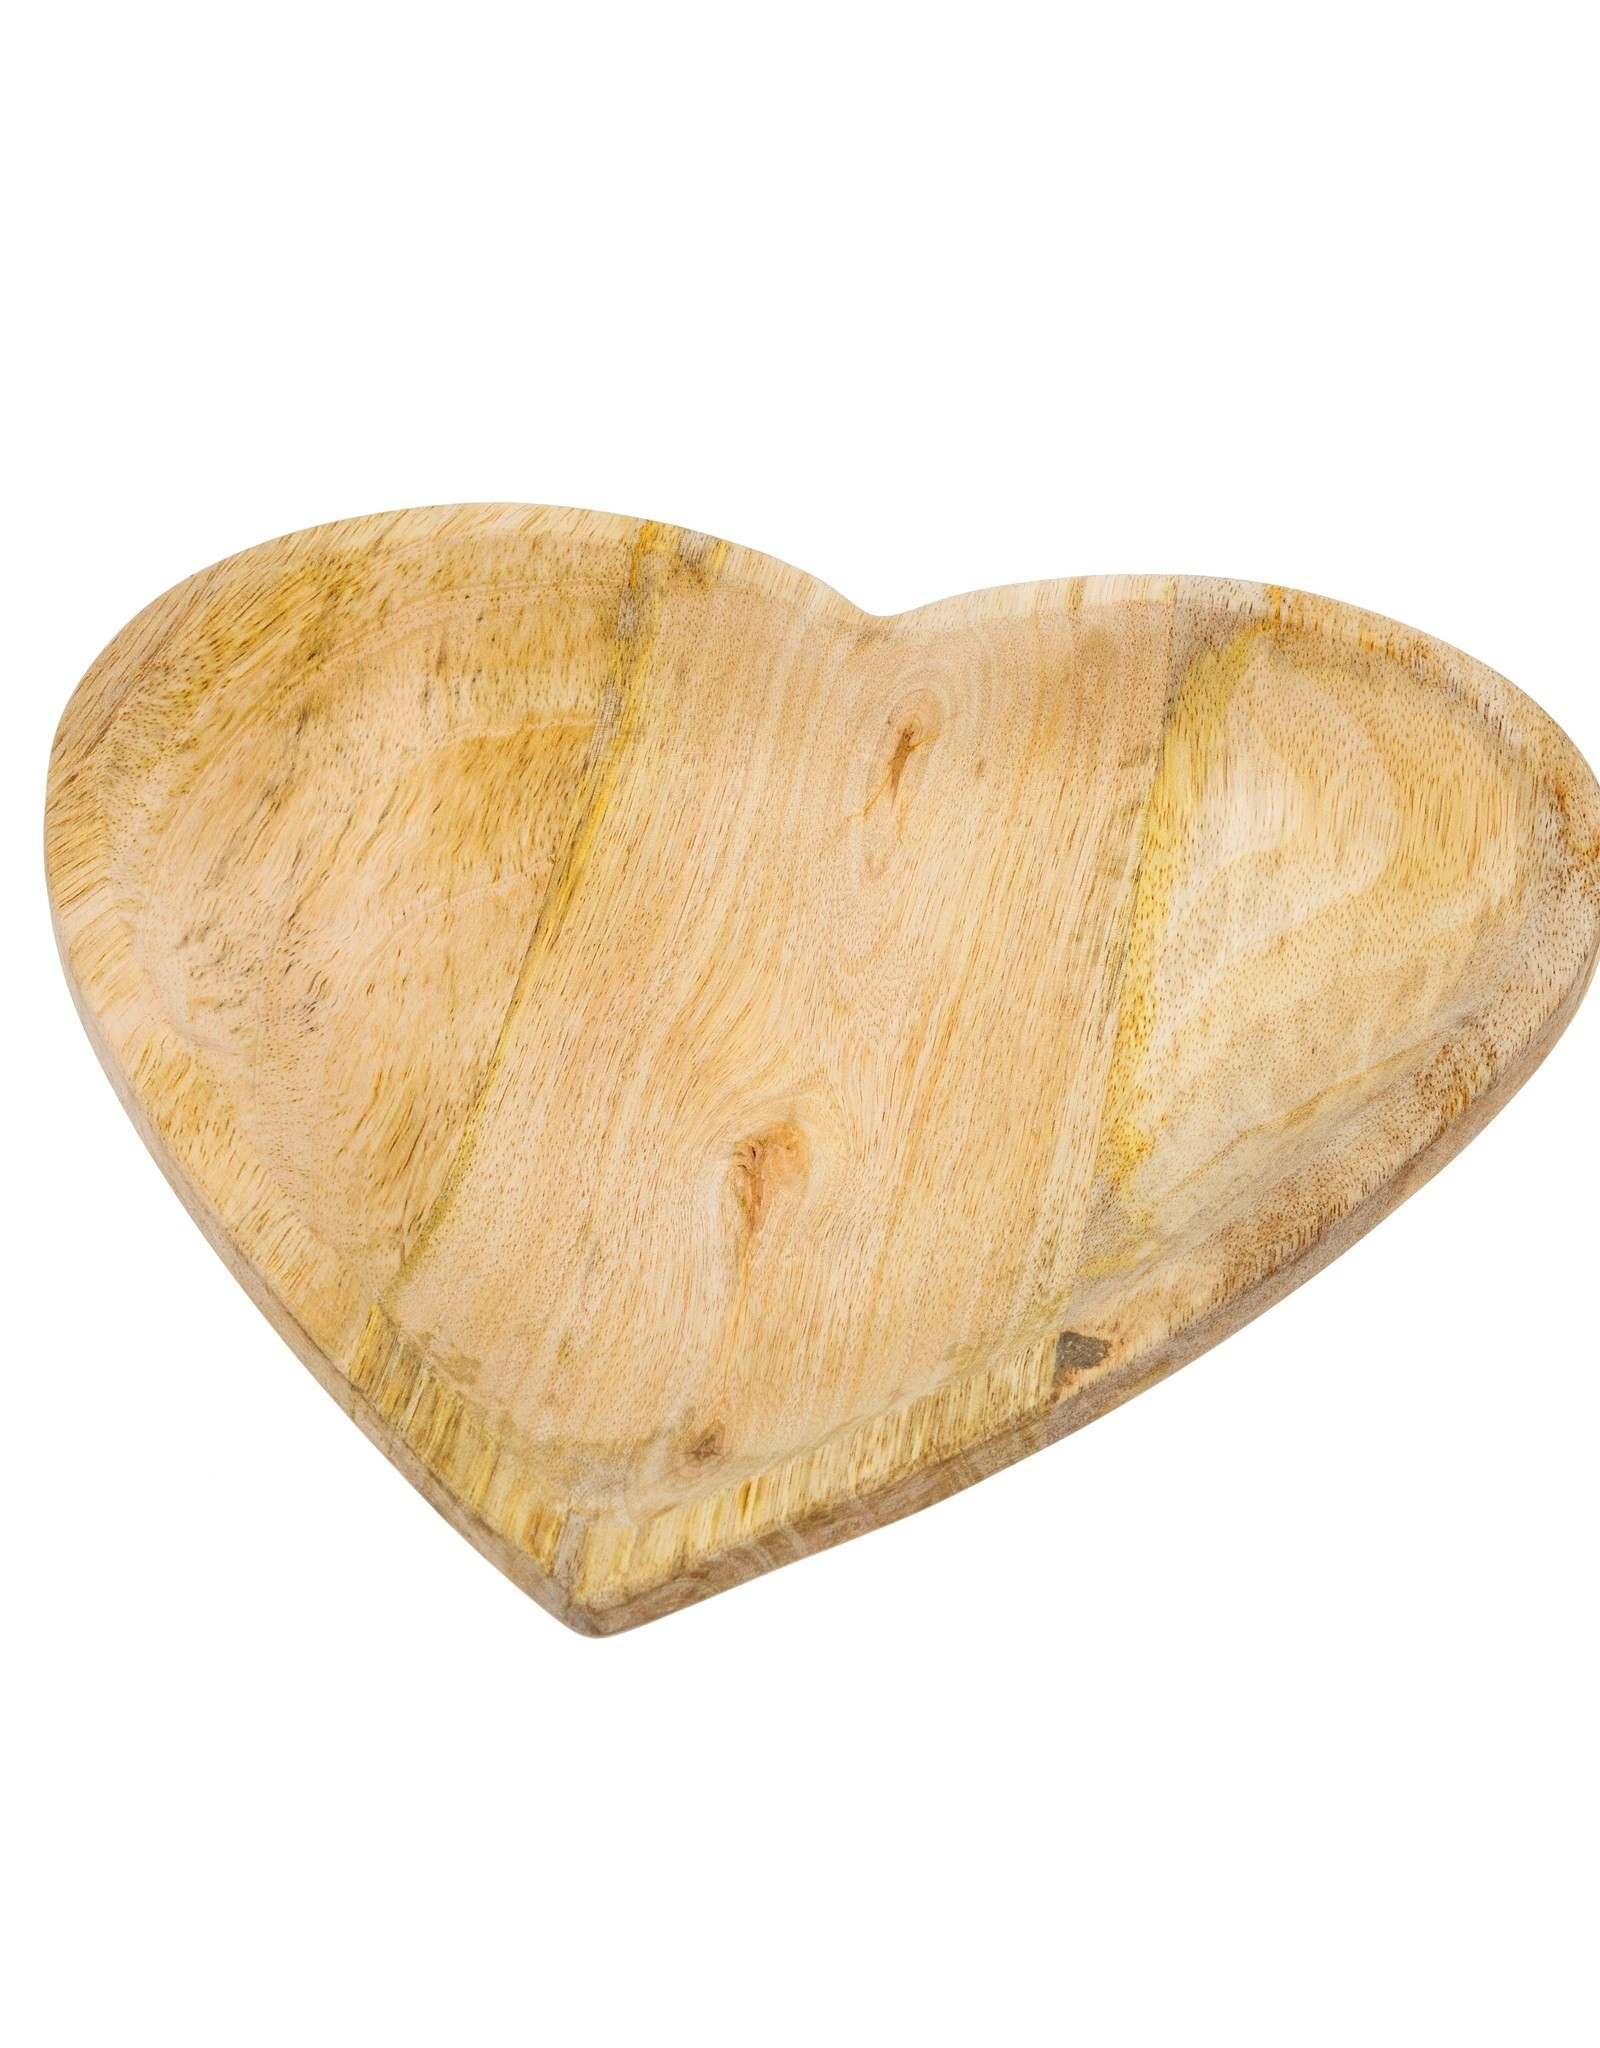 Wild Heart Plate large